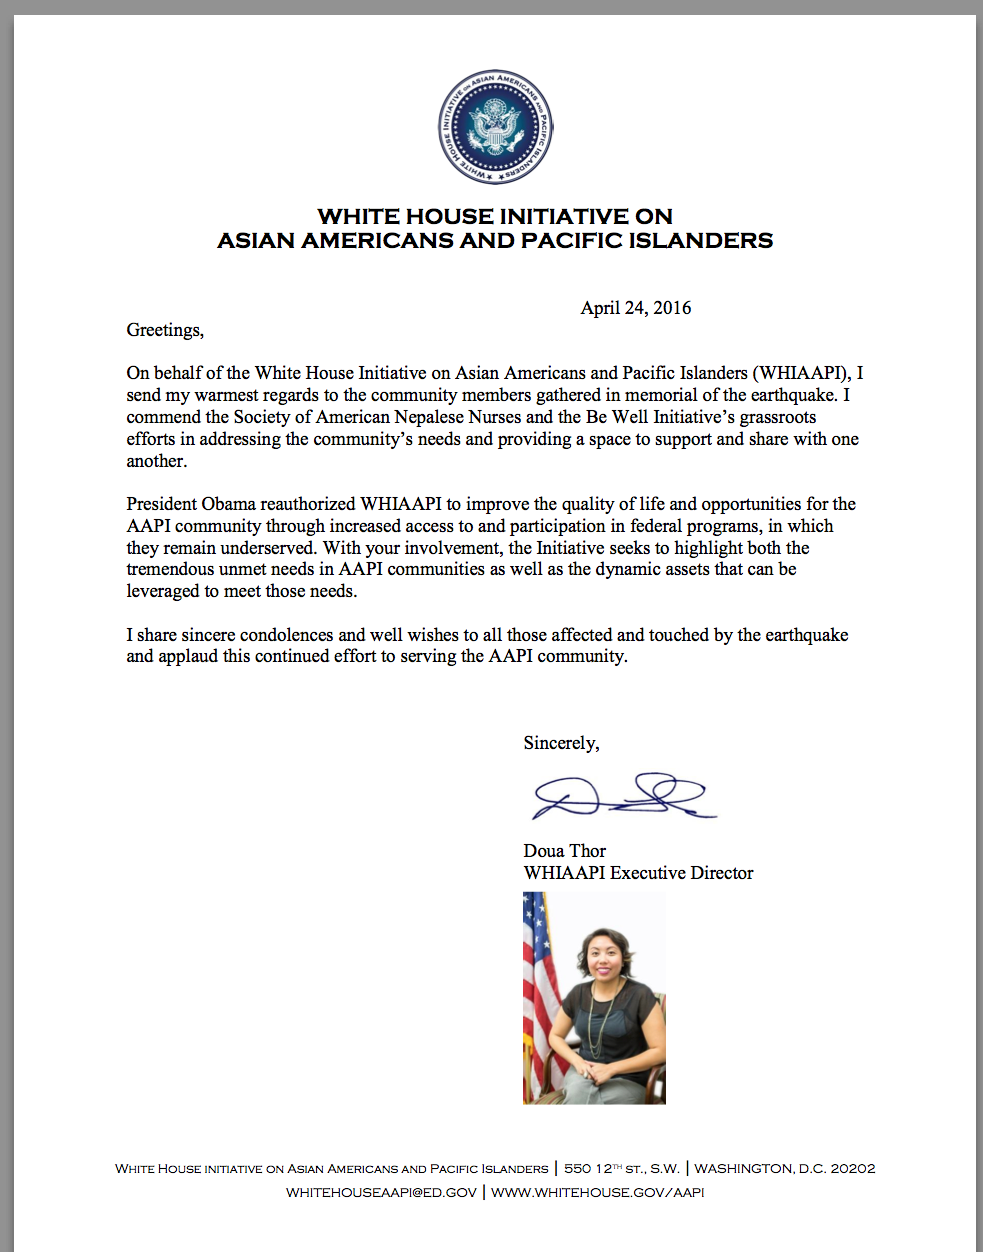 White House Initiative On Asian Americans And Pacific Islanders Be